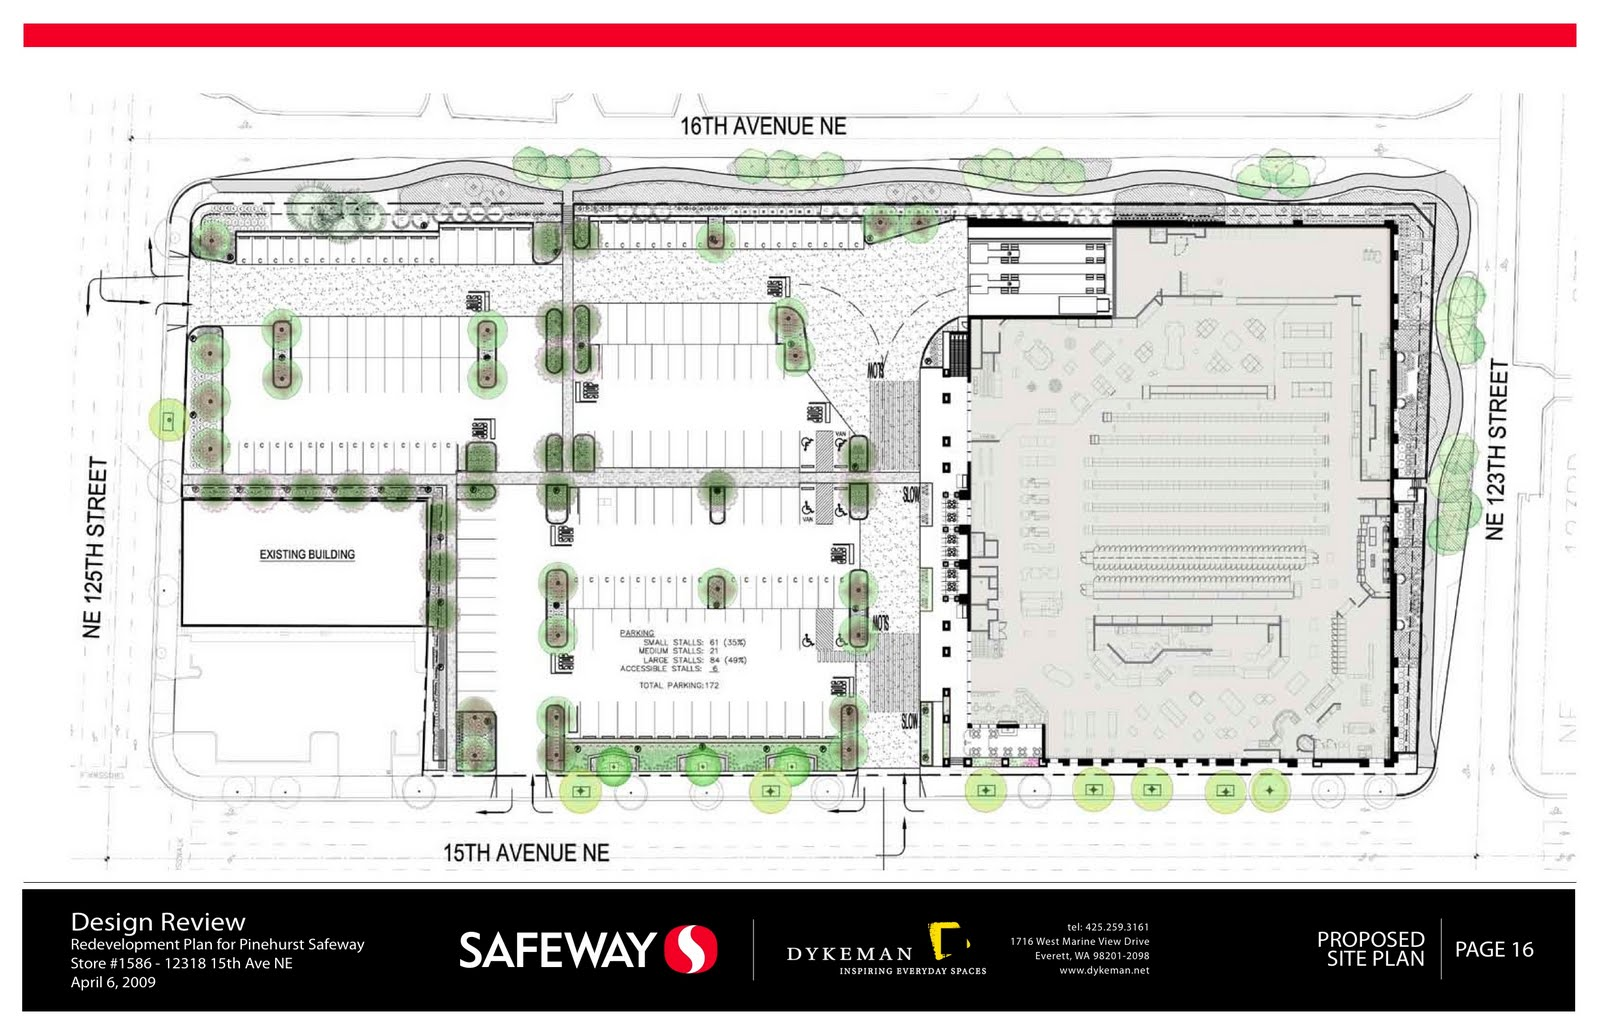 Pleasant Family Shopping: A Well Planned Safeway, 1966  Safeway Store Layout